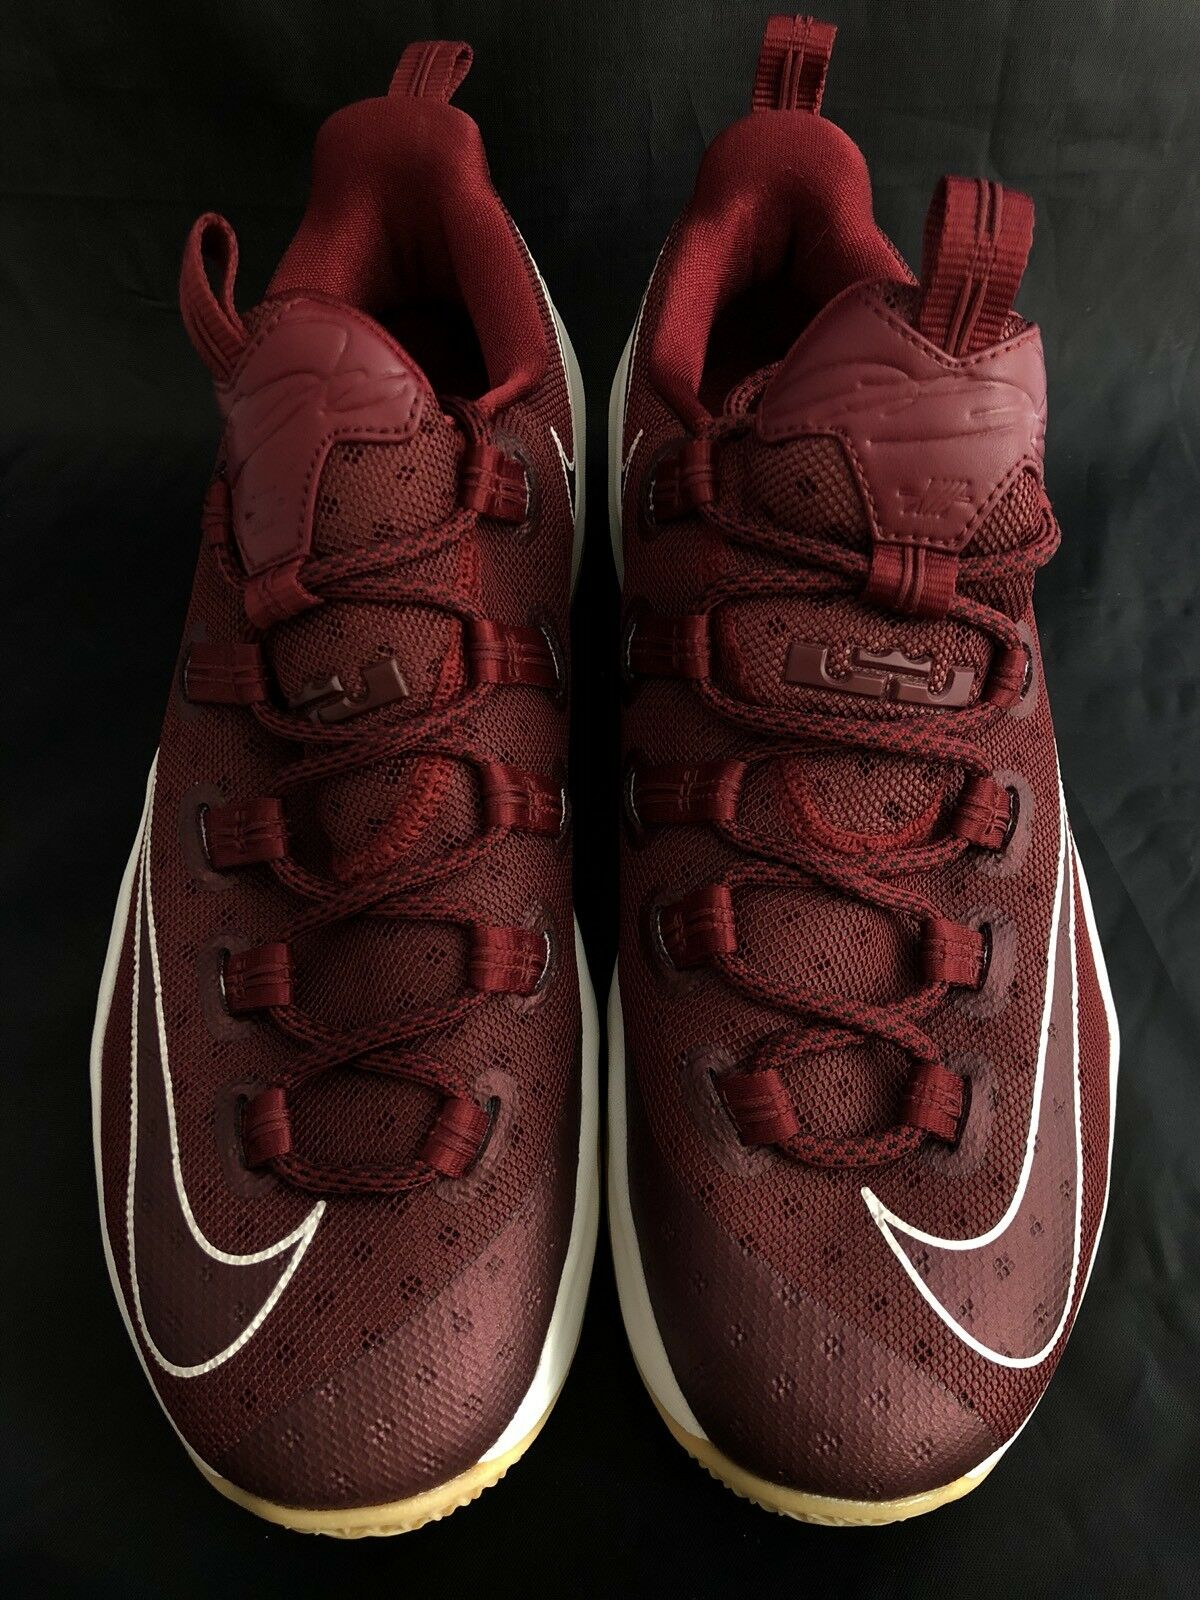 Nike Men's Lebron XIII 13 Low Basketball Shoe Burgundy Gum 9.5 831925-610 Size 9.5 Gum 836c77